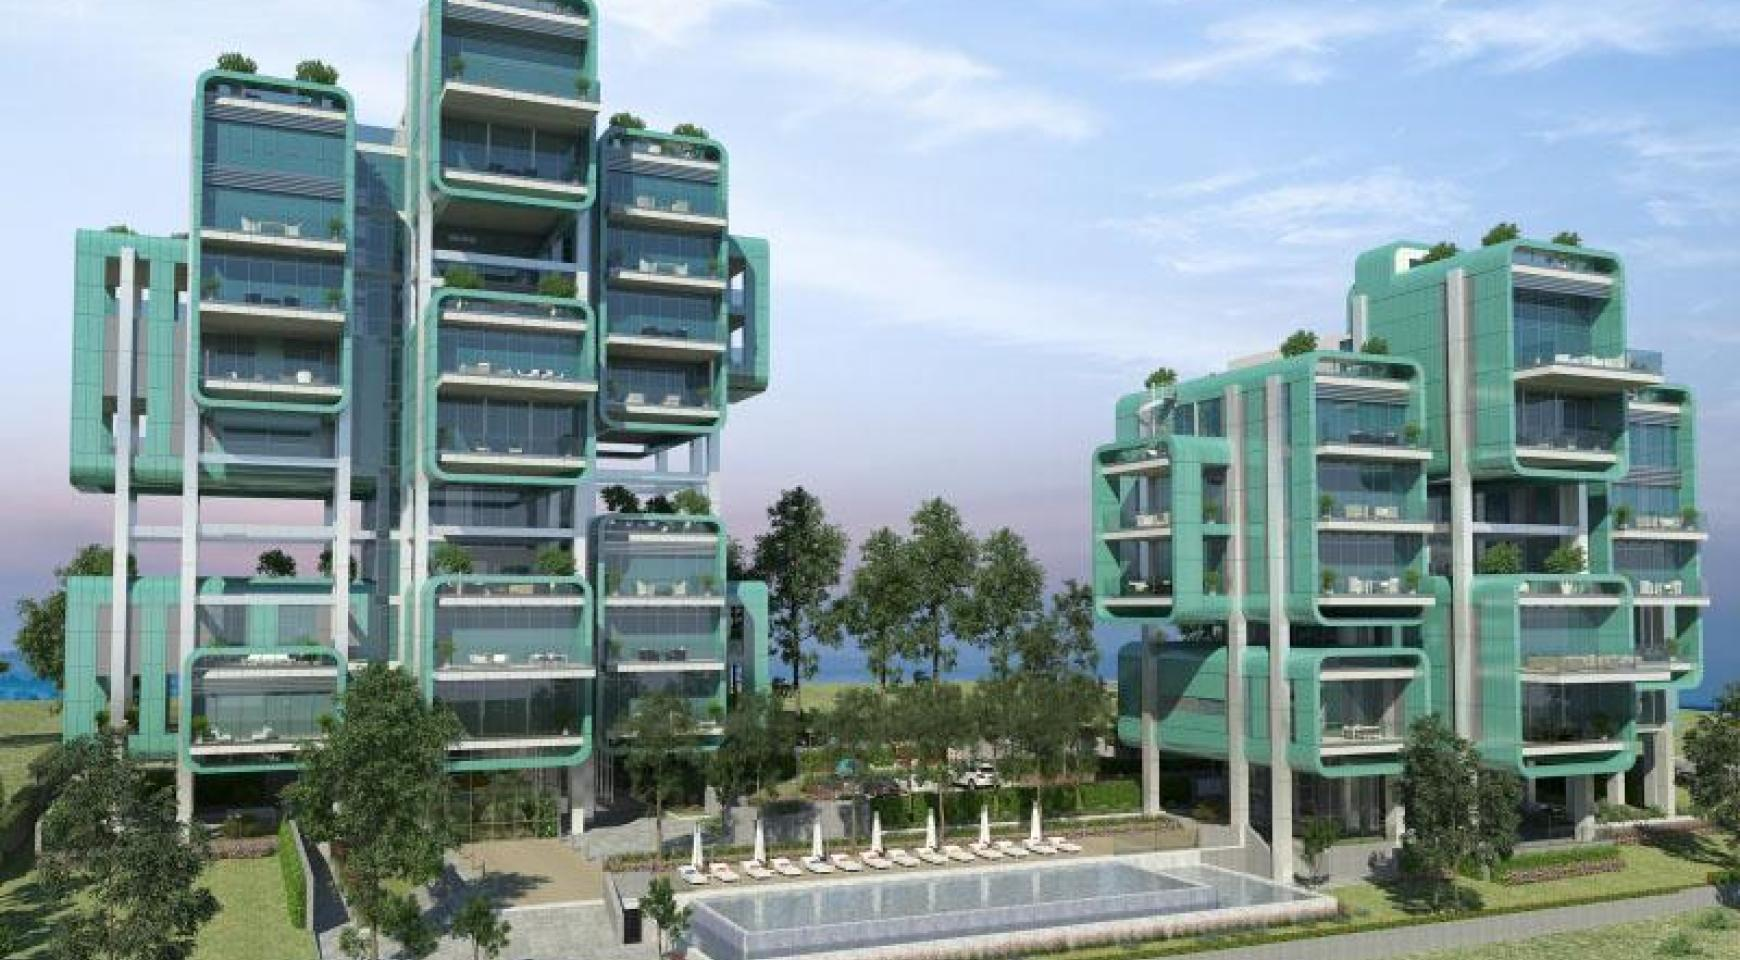 Luxurious 3 Bedroom Apartment within a New Complex by the Sea - 24